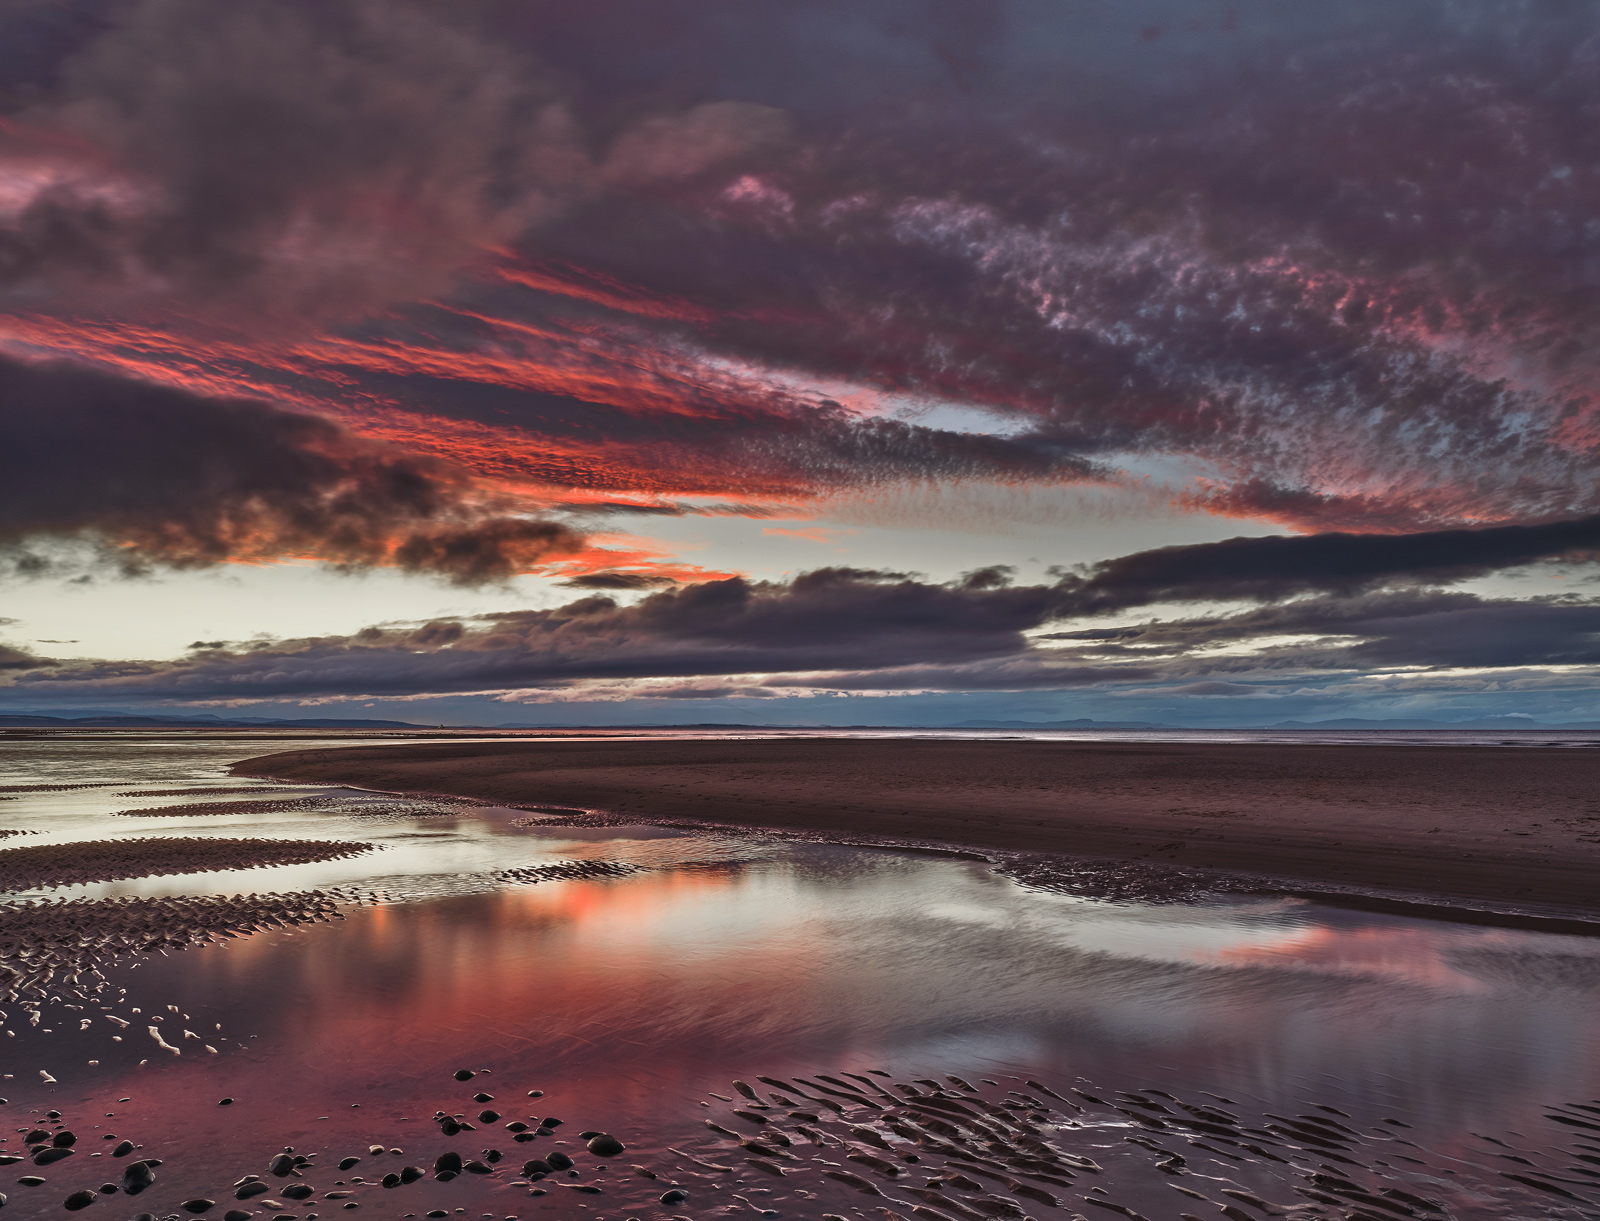 Blueberry Findhorn, Findhorn, Moray, Scotland, sunset, sky, plum, violet, purple, channel, lagoon, banana, wisps, crimso, photo